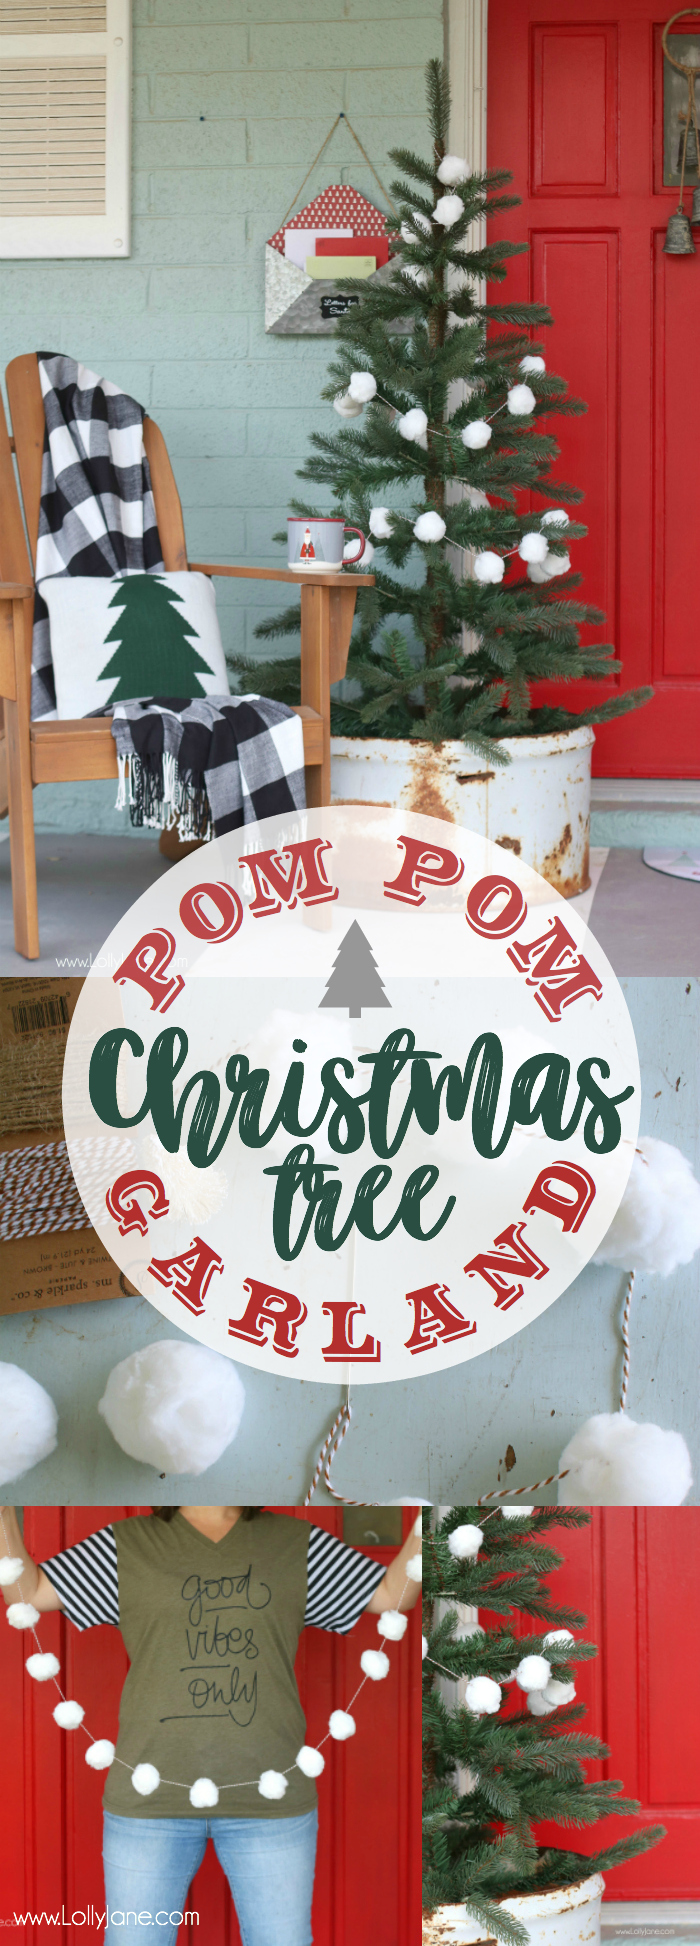 White Pom Pom Christmas Tree Garland Tutorial